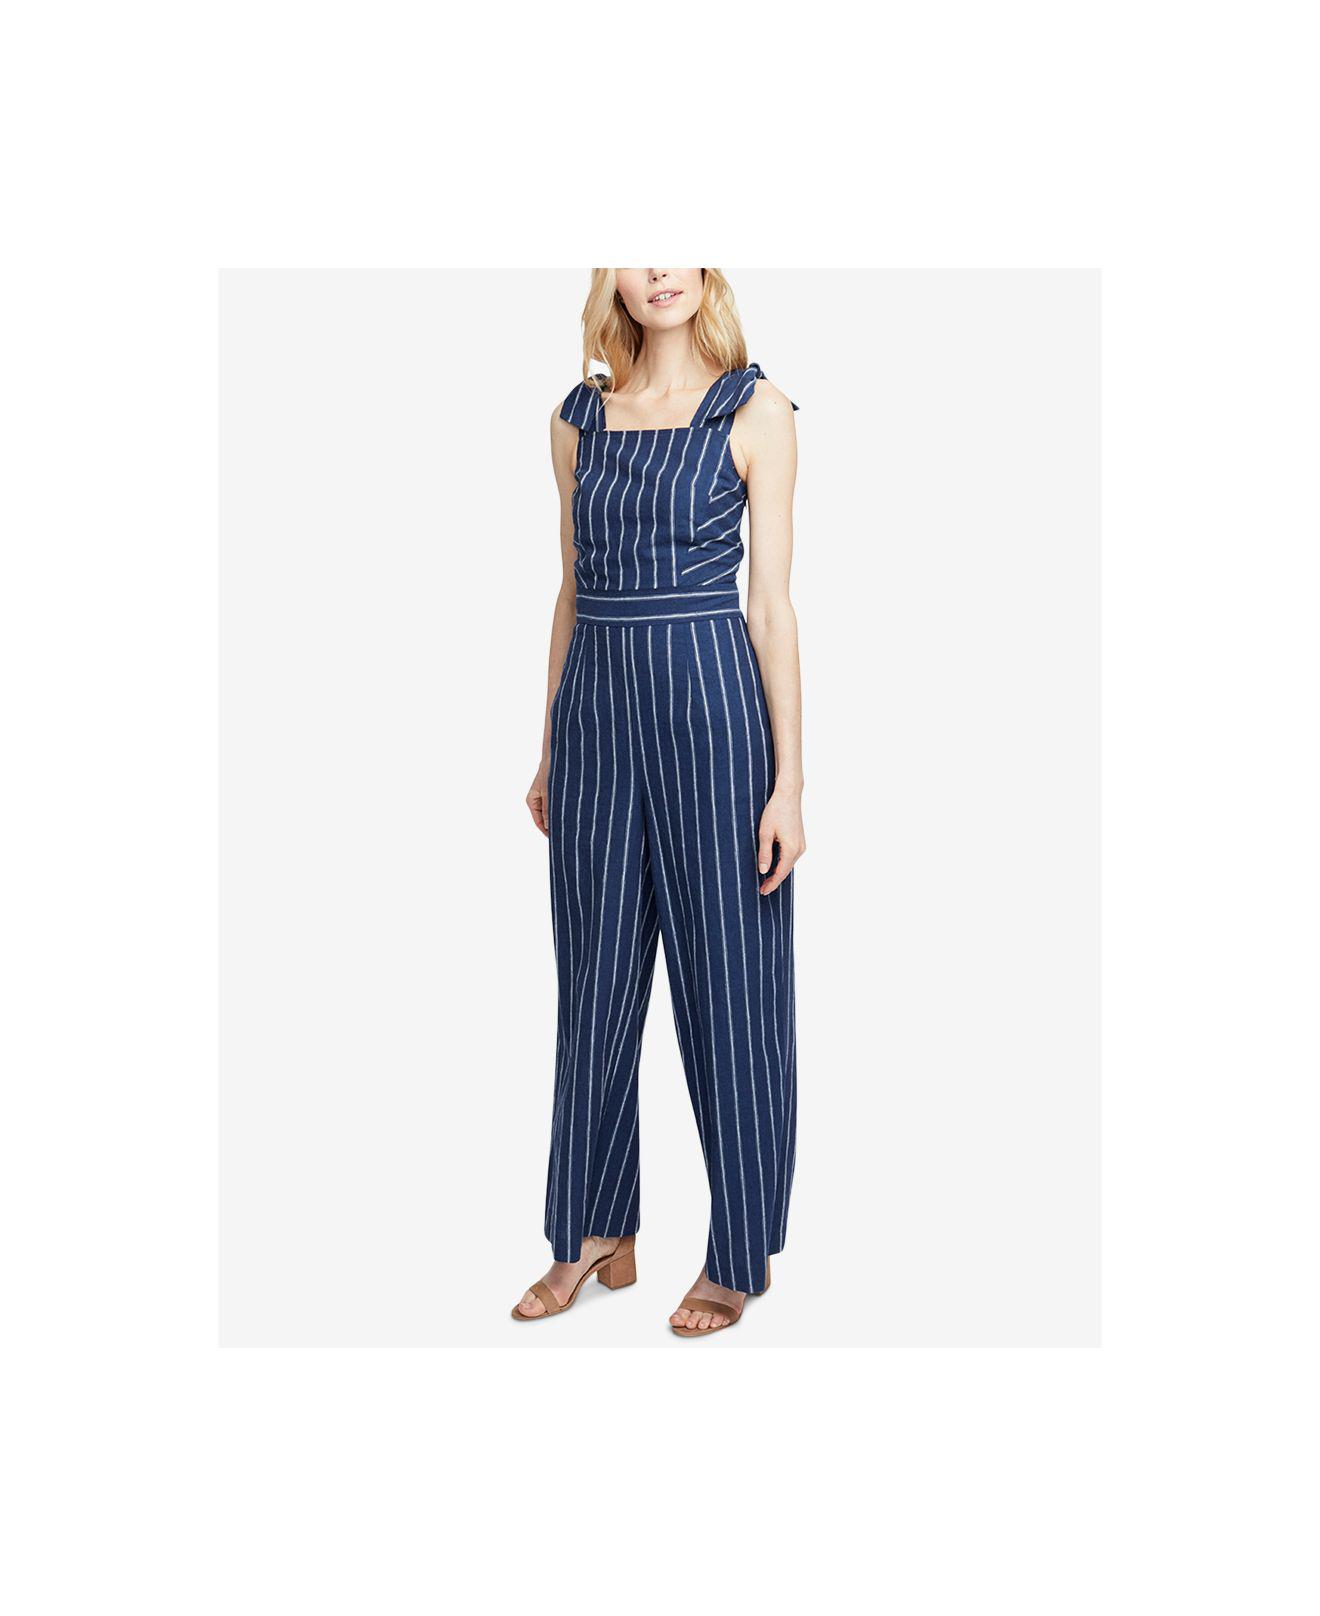 981feab16351 Lyst - RACHEL Rachel Roy Kate Striped Jumpsuit